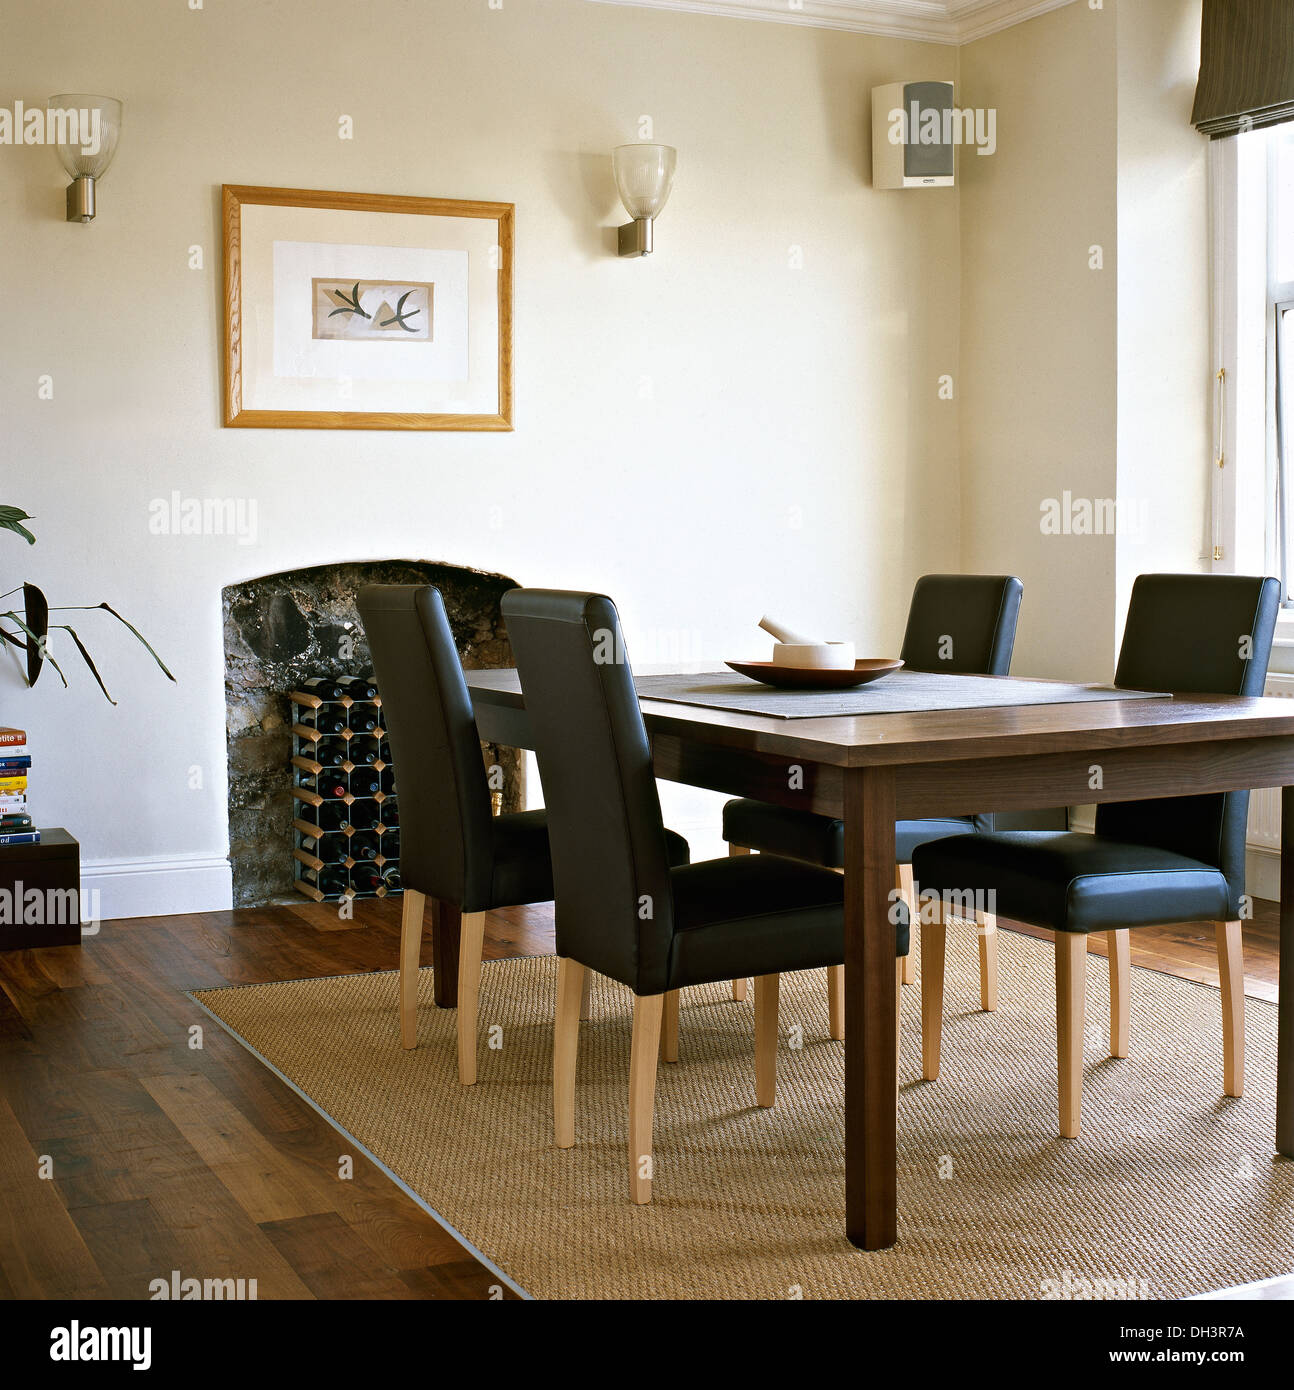 Sisal Rug On Wooden Floor In Modern Dining Room With